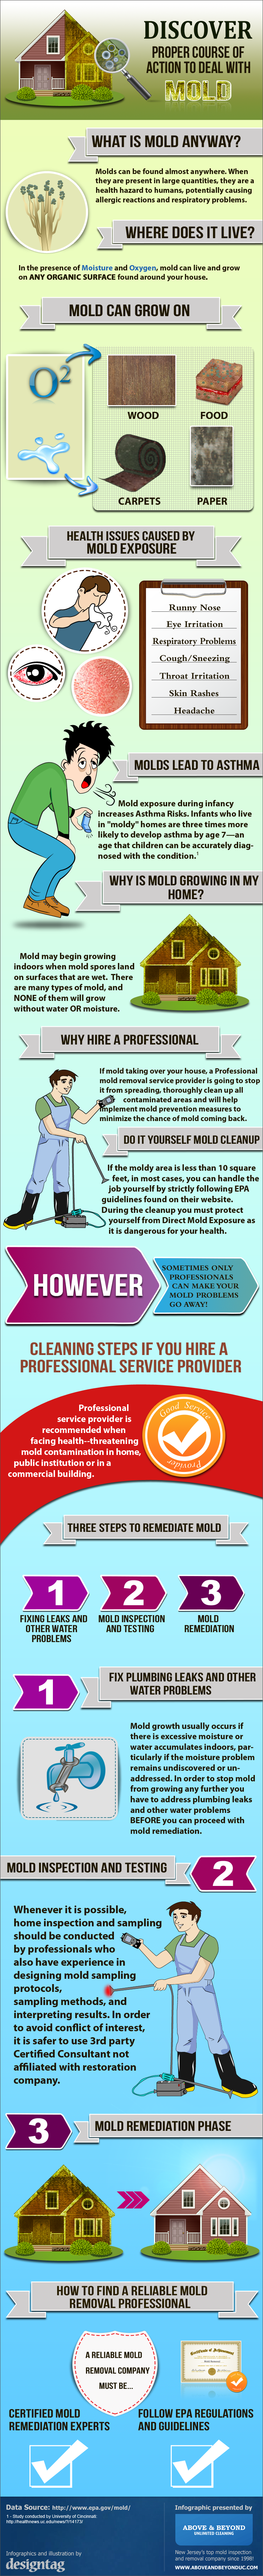 How to deal with household mold - Infographic